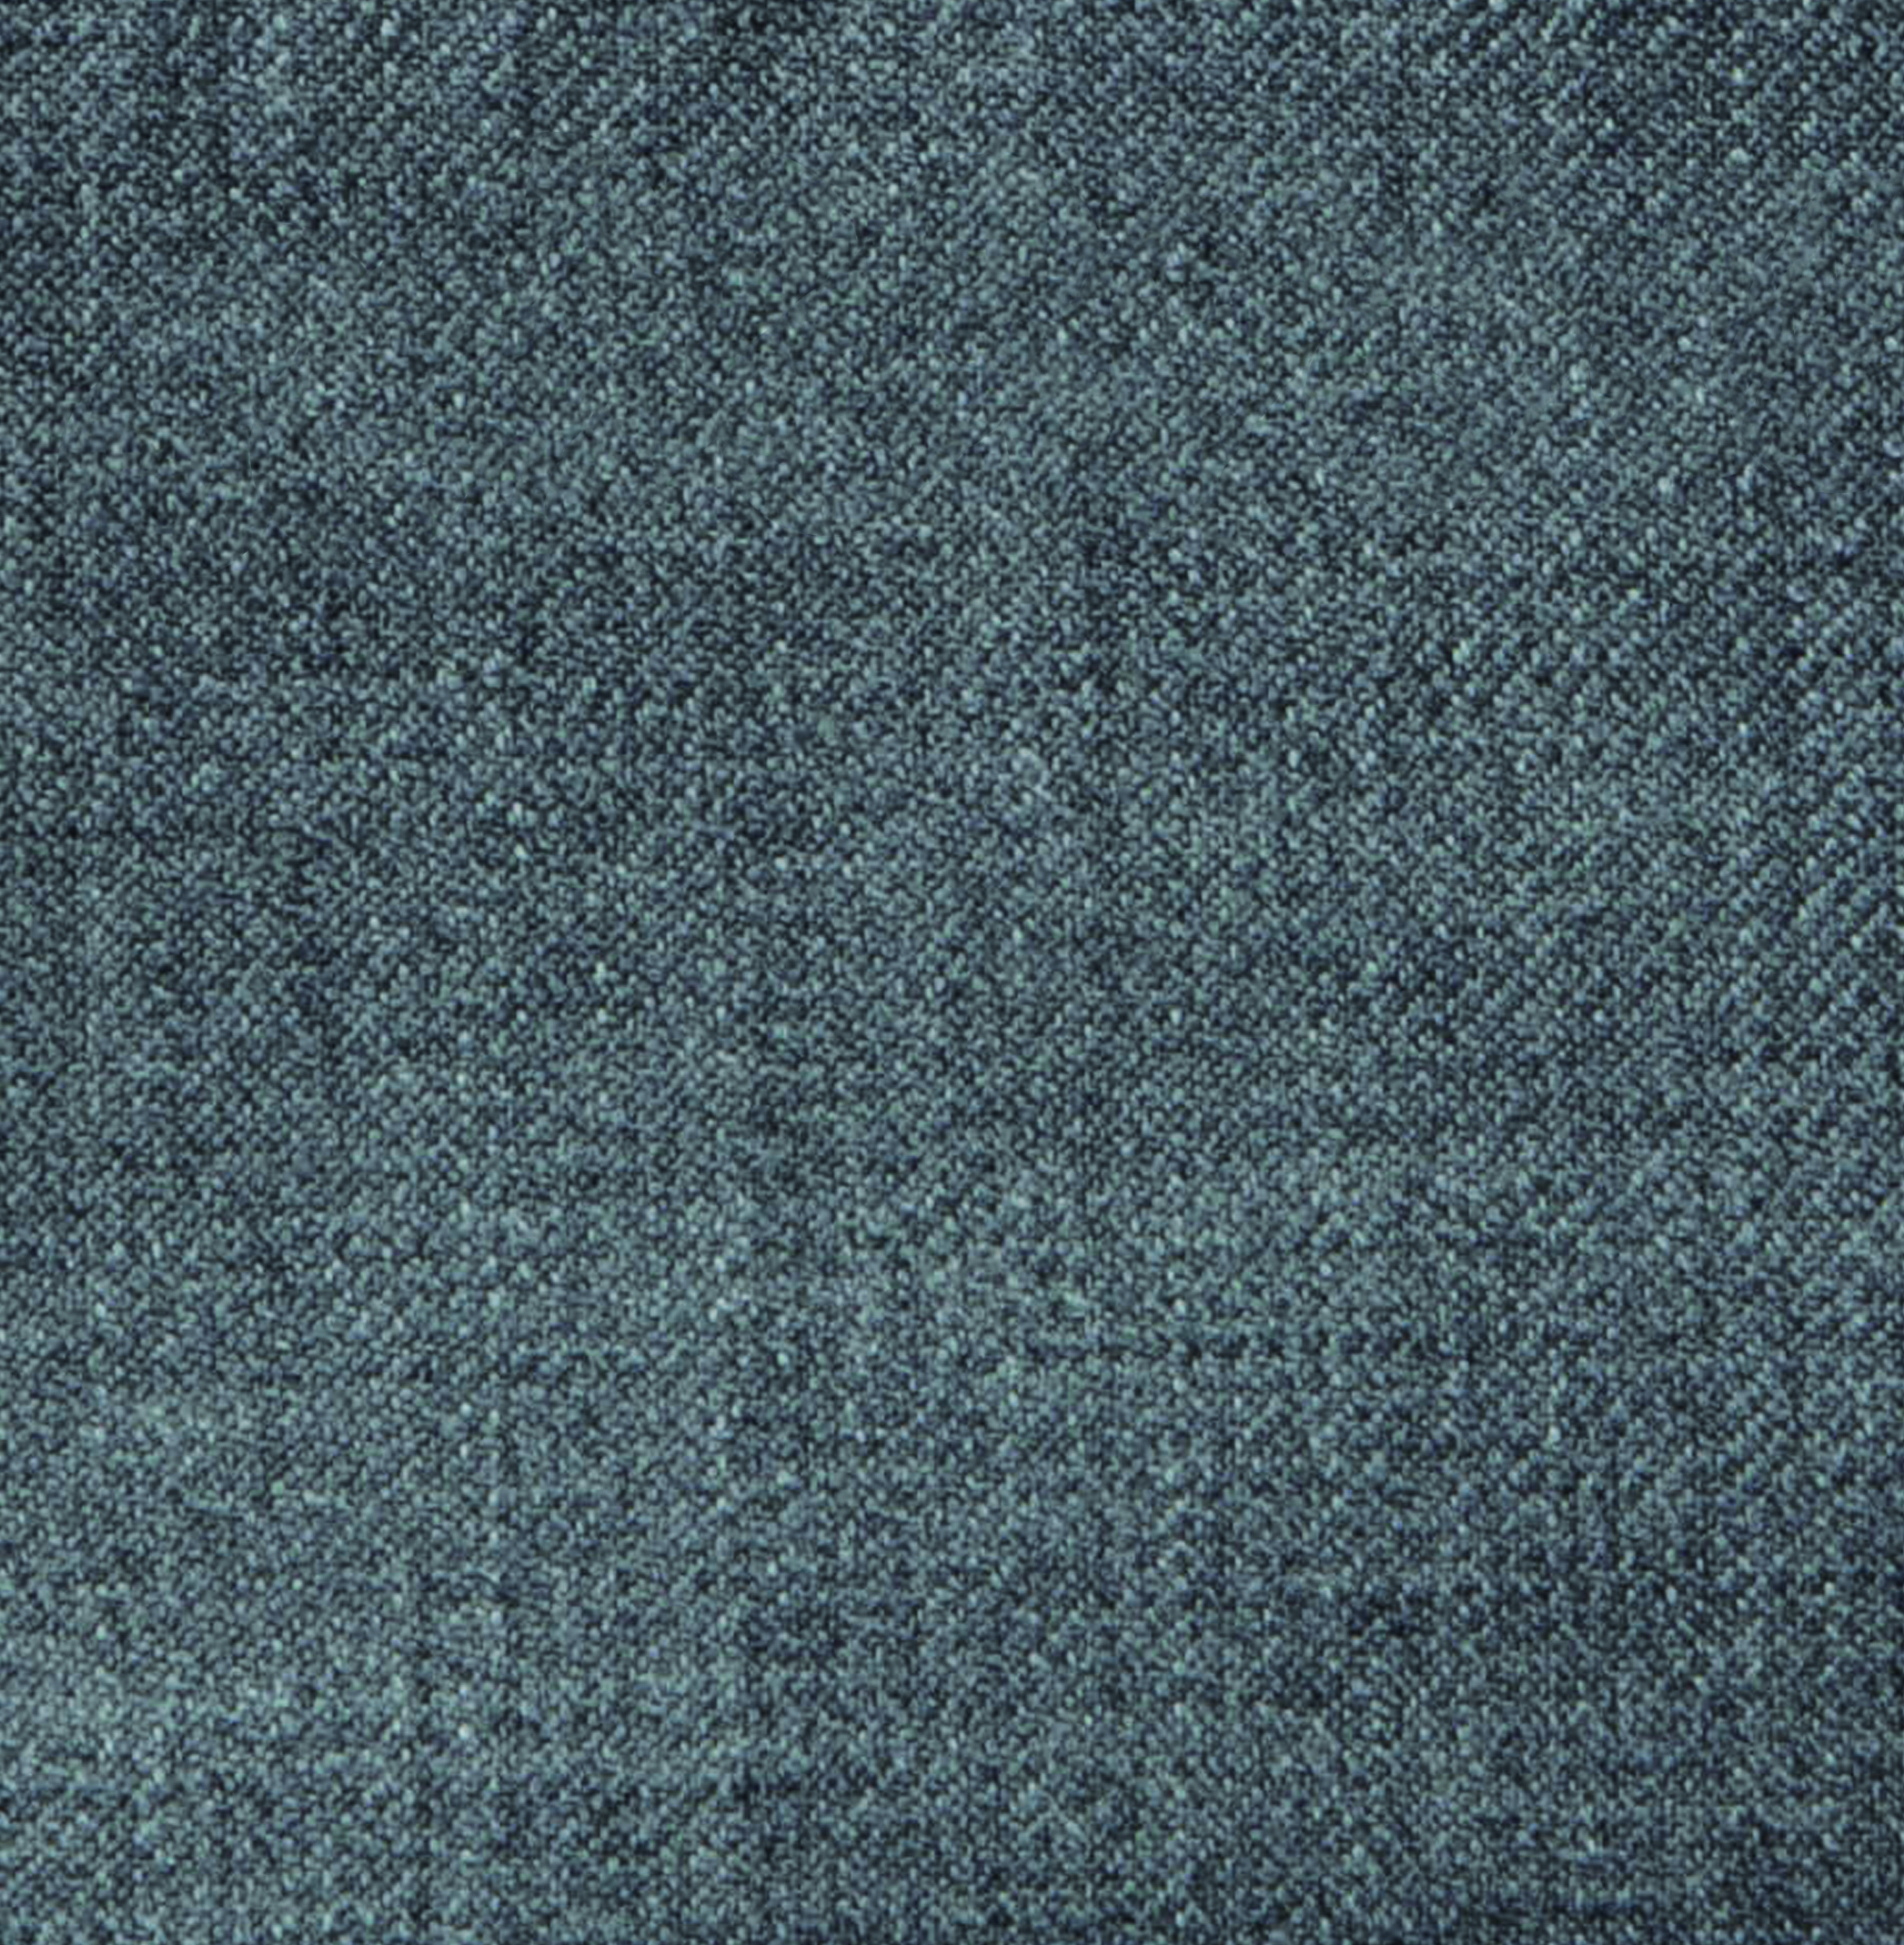 Buy tailor made shirts online - Luxurious Pure New Wool - Grey No lining